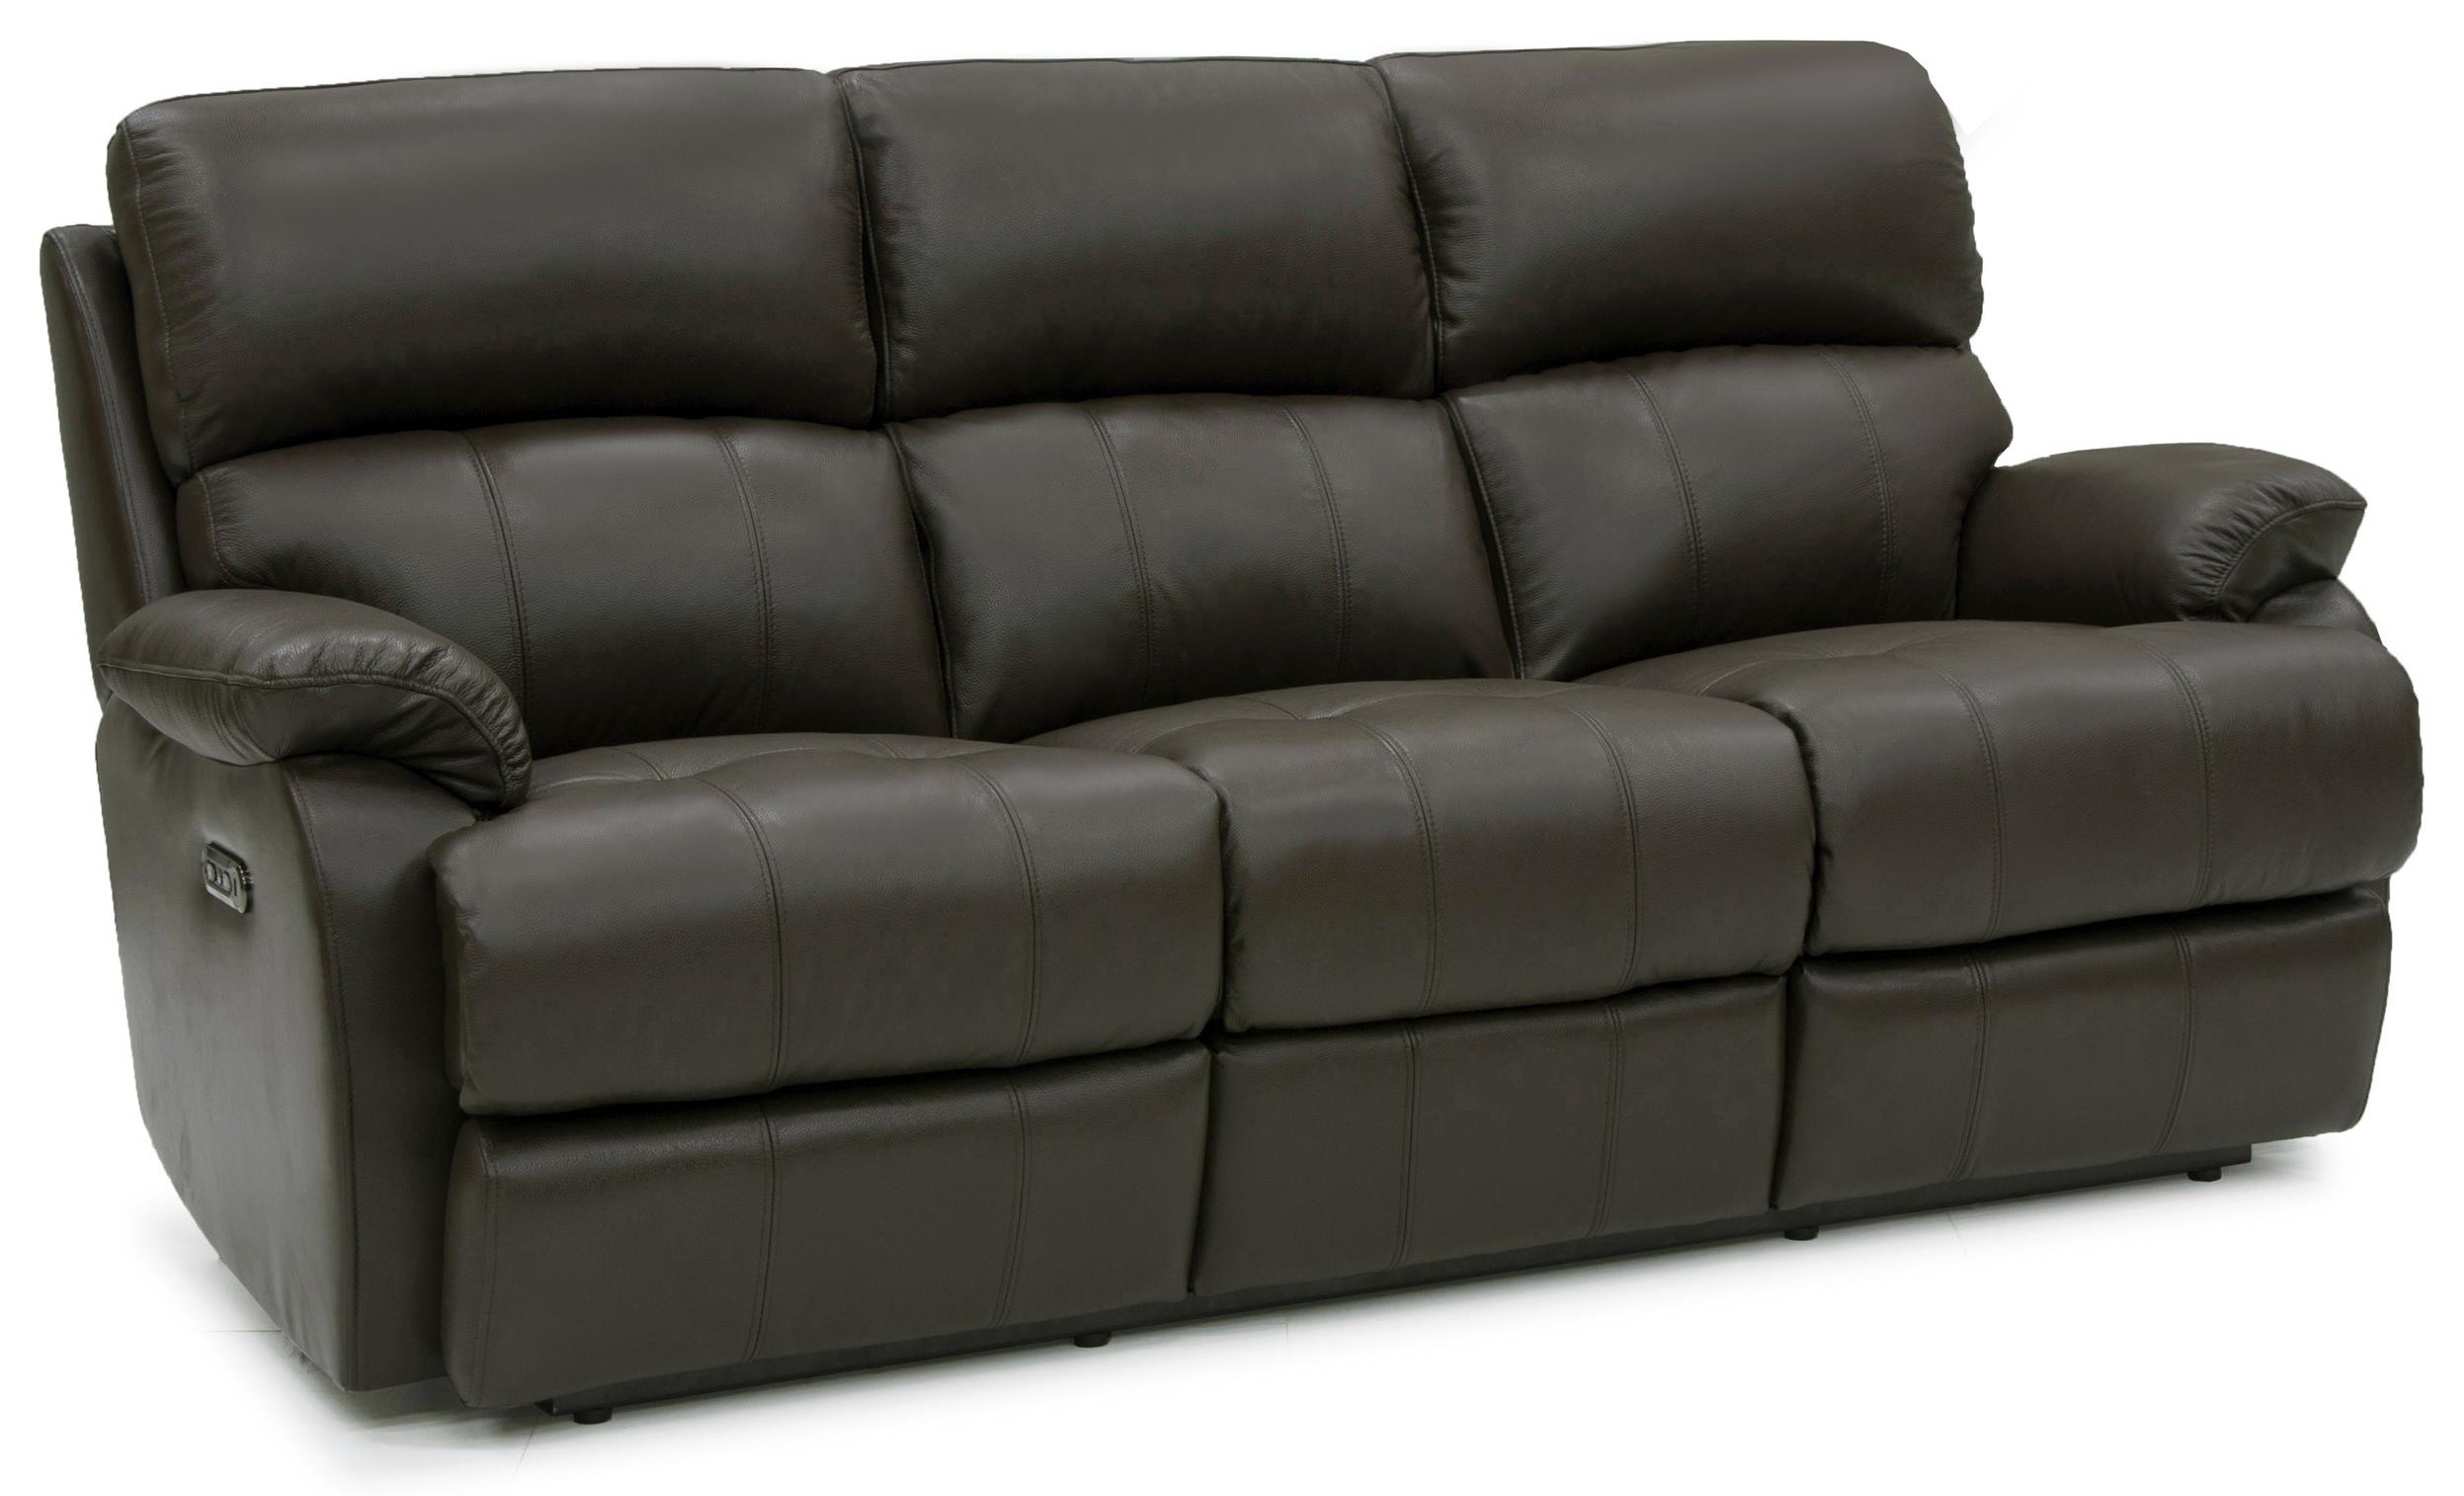 Jacksonville Power Reclining Leather Sofa at Rotmans